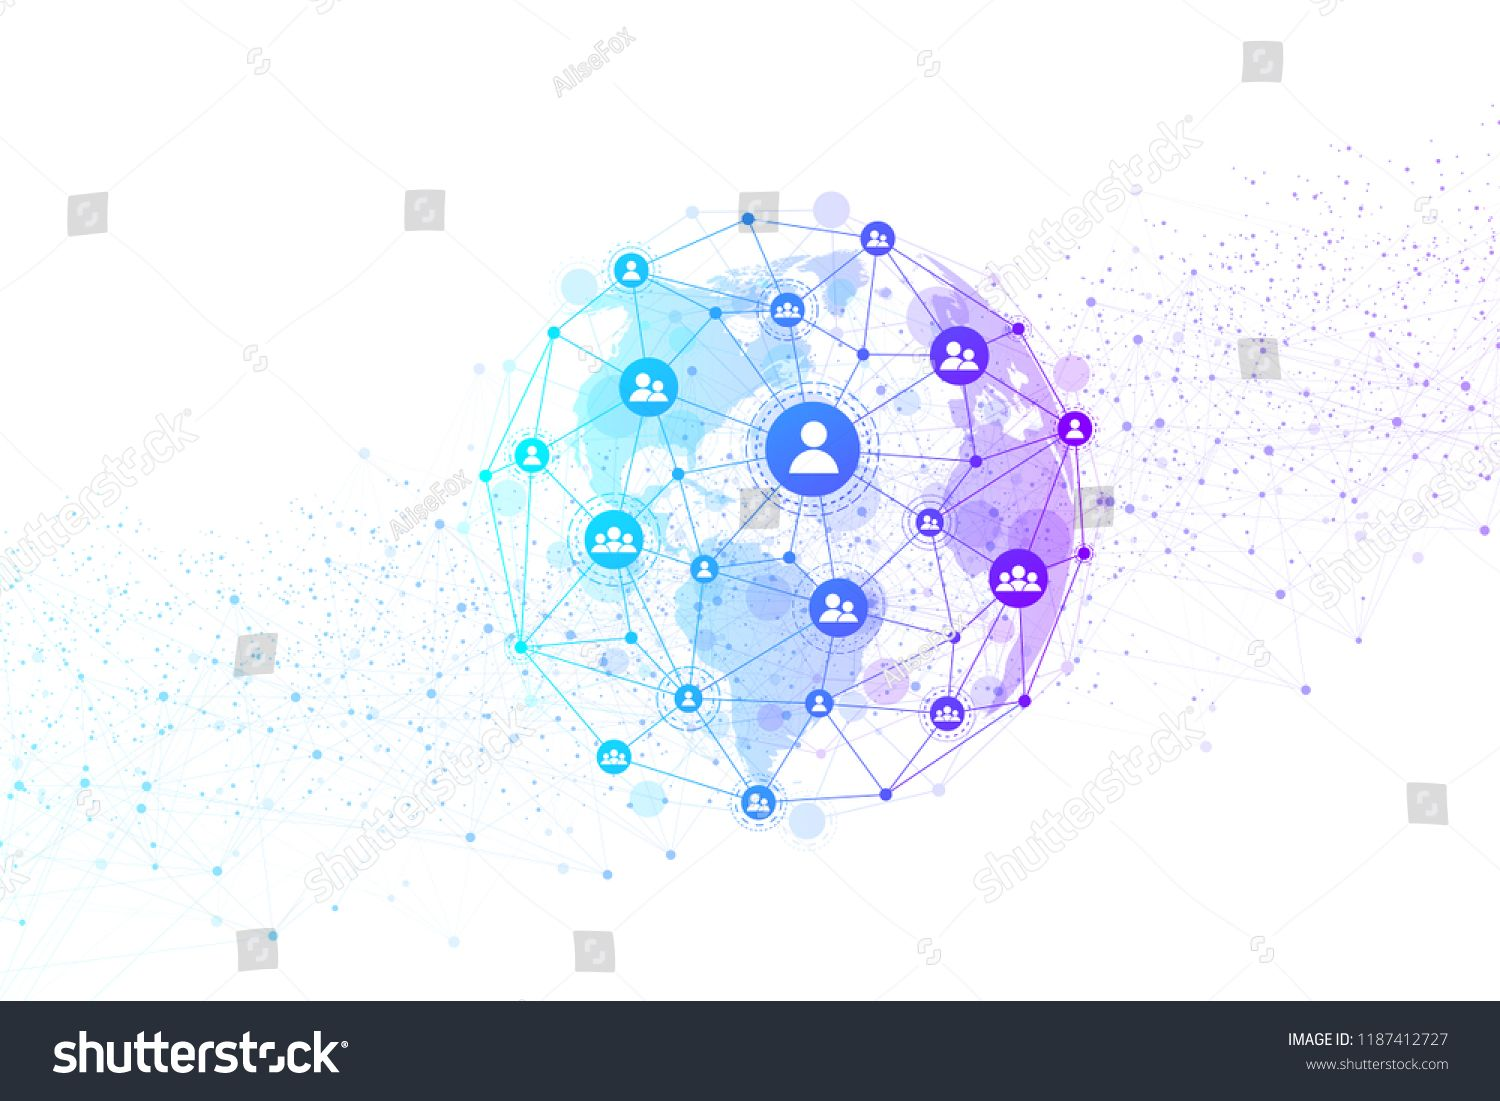 Global Structure Networking And Data Connection Concept Social Network Communication In The Global Co Vector Illustration Computer Network Internet Technology